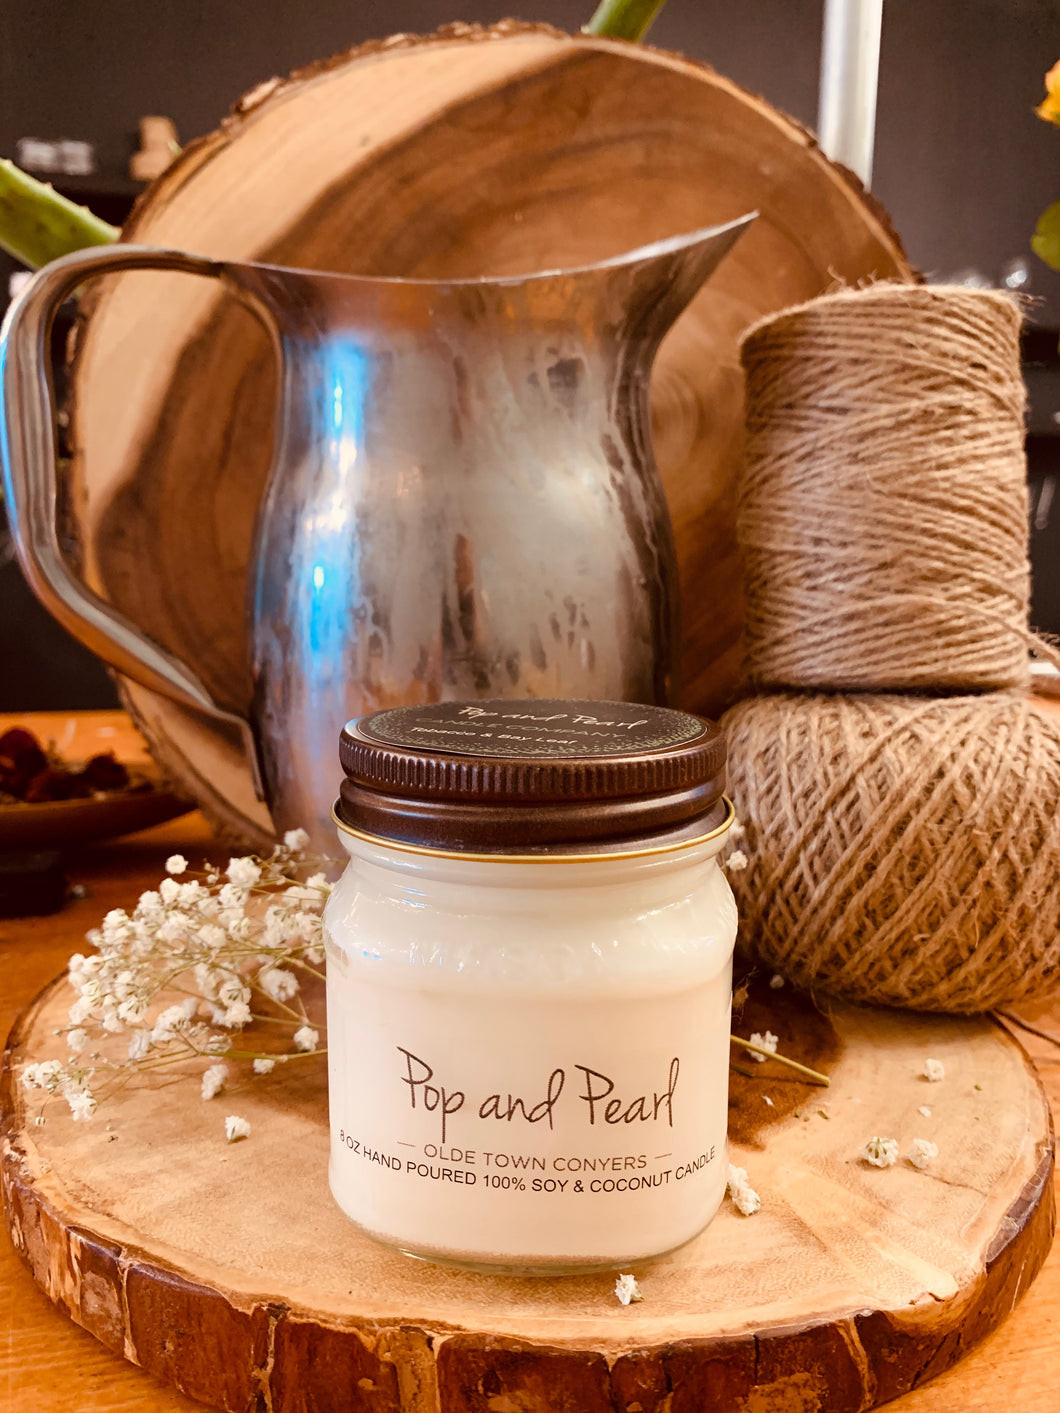 100% Soy and Coconut Candle 08oz